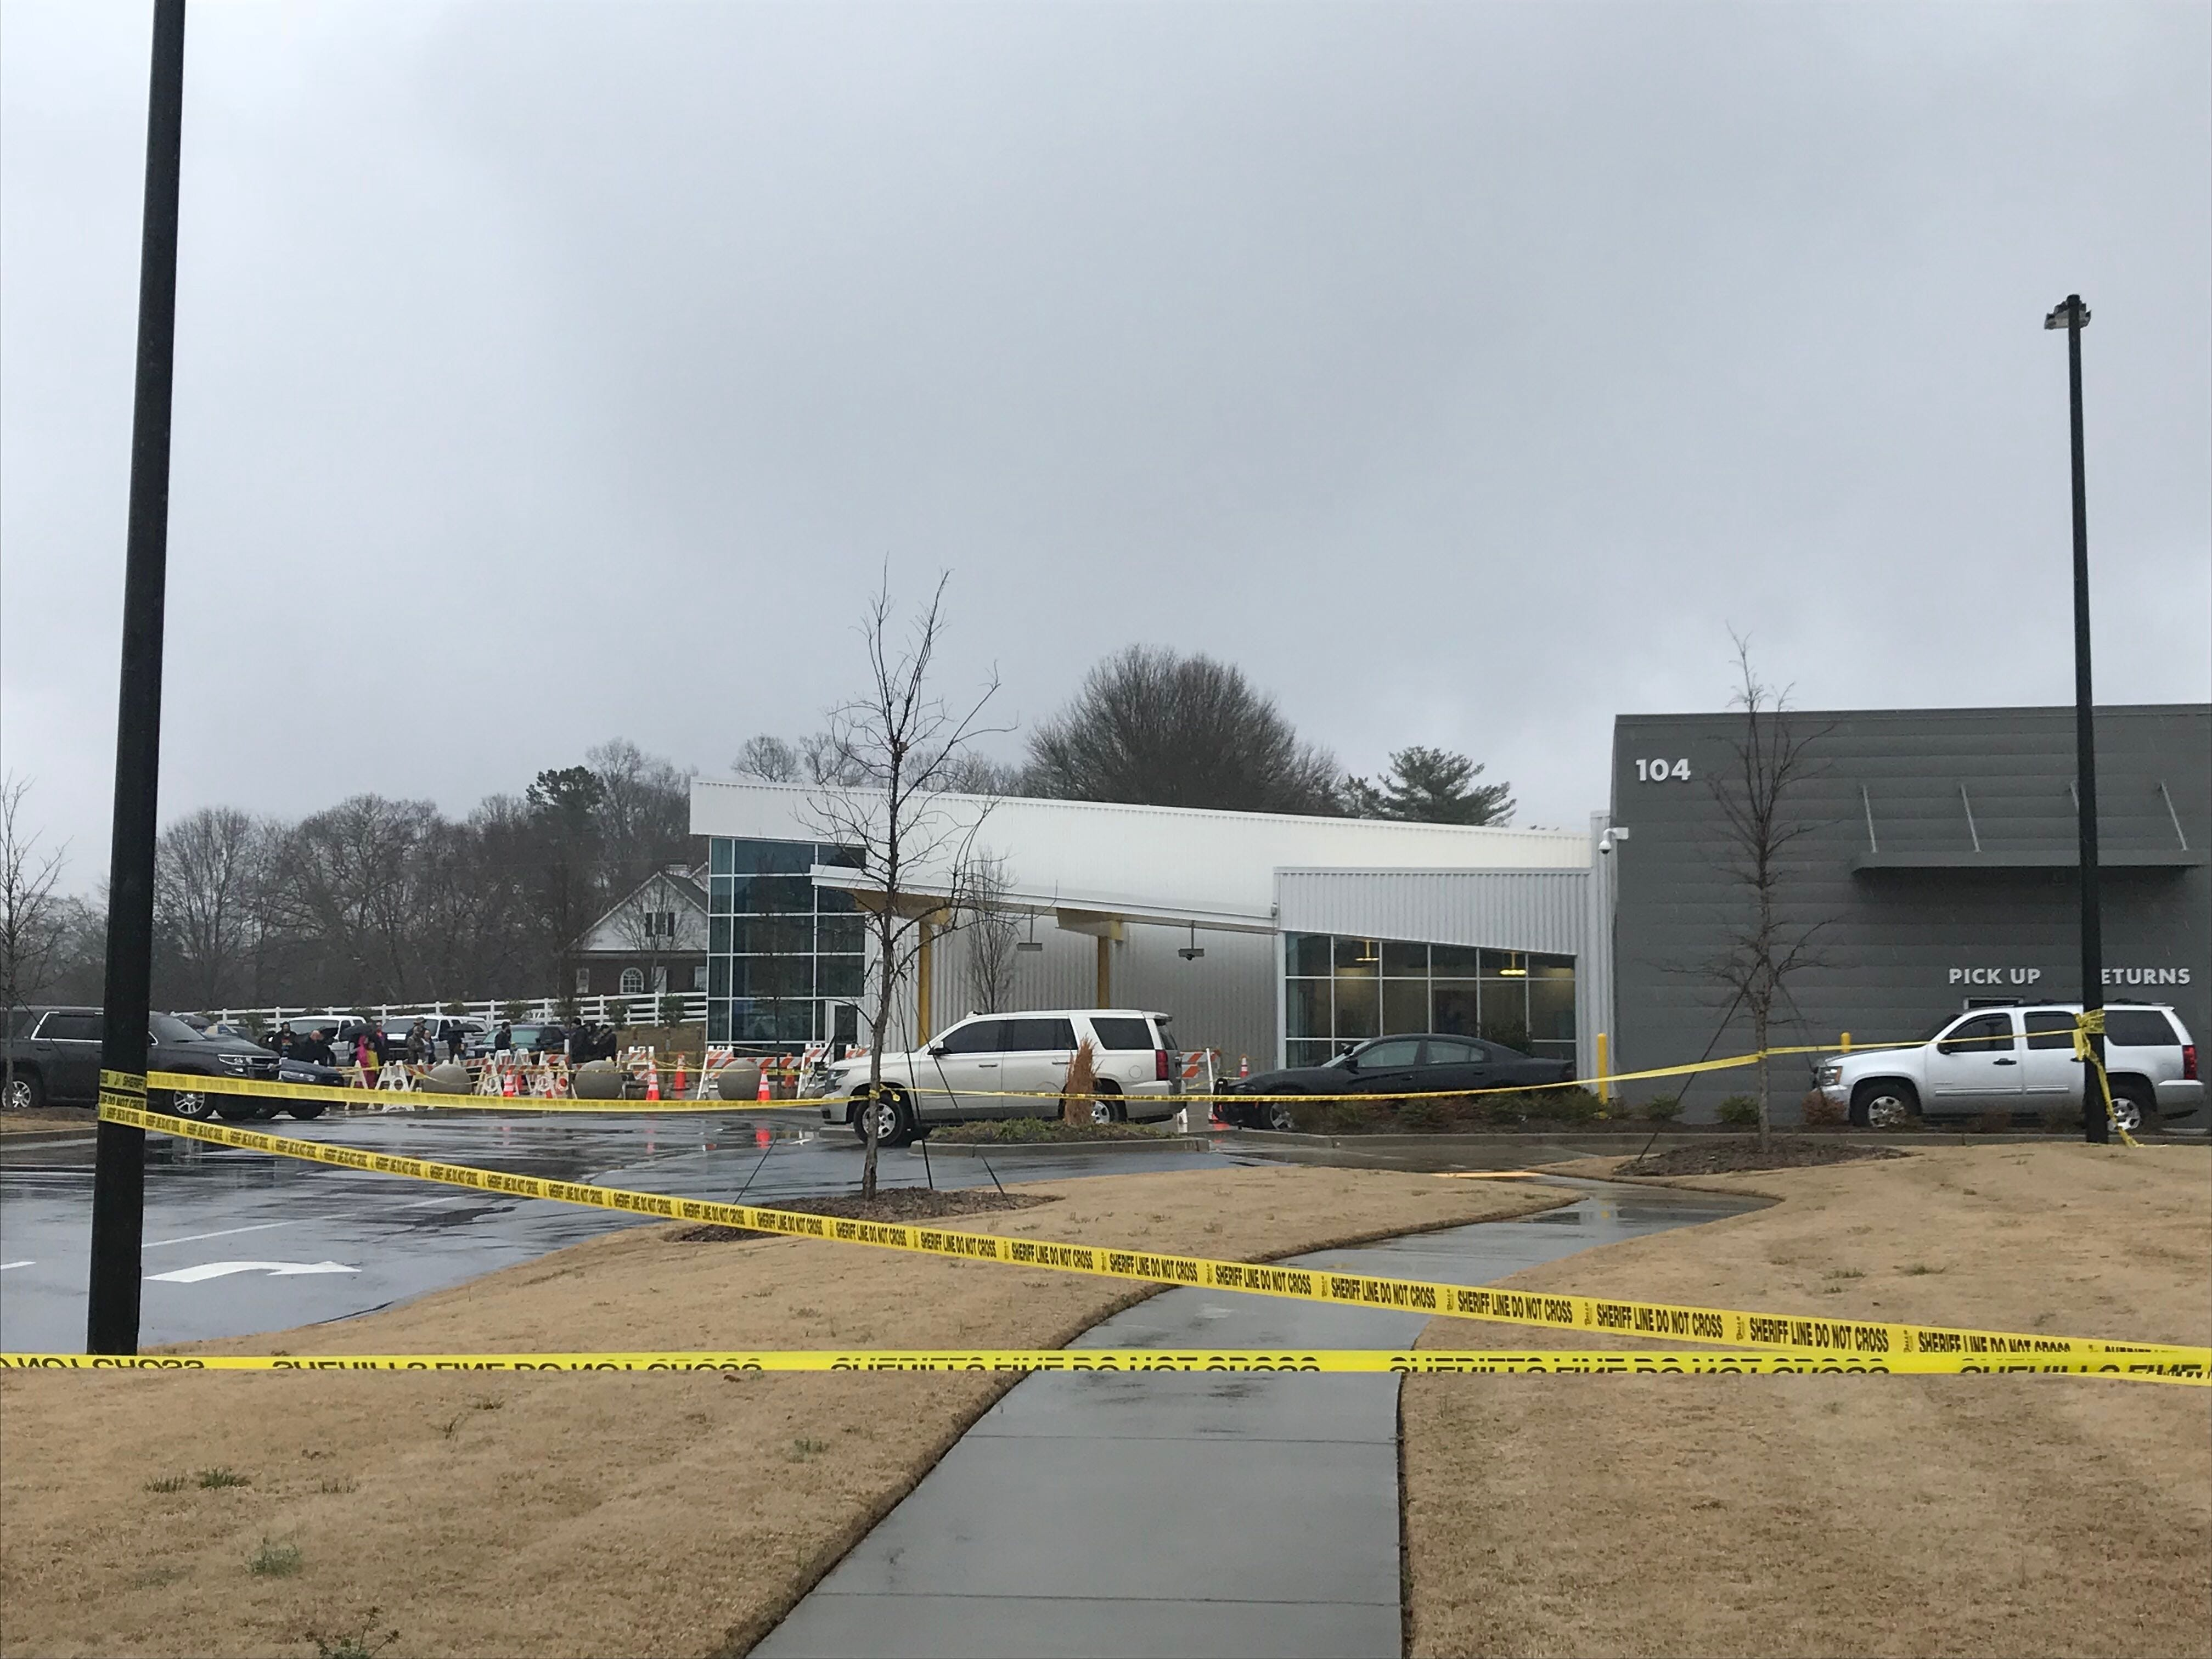 The scene outside Five Forks library ahead of the Drag Queen story hour around 2:30 p.m. Sunday, Feb. 17, 2019. The event is scheduled to begin at 3 p.m.